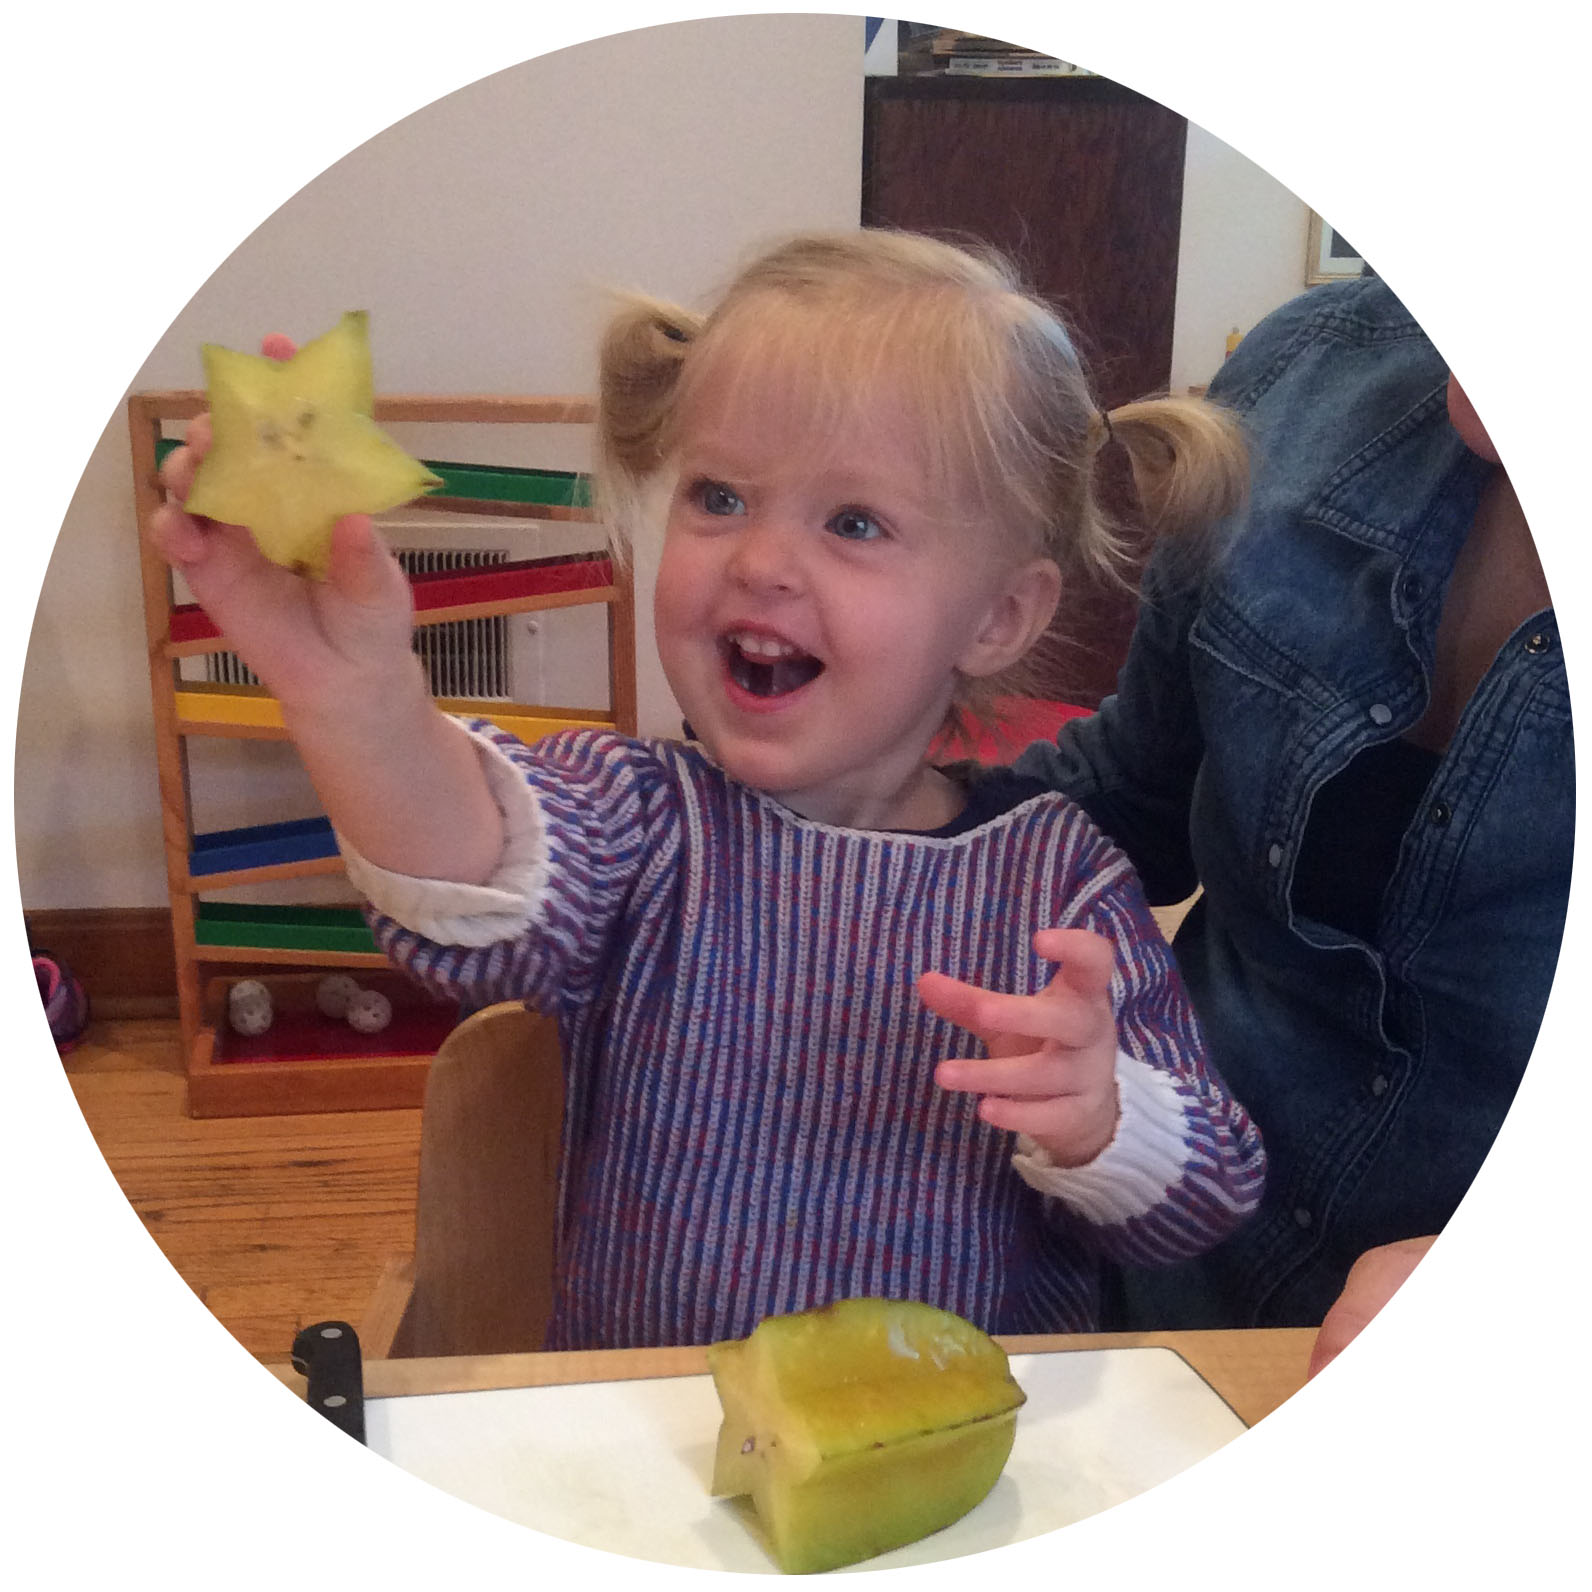 toddler cut starfruit.jpeg